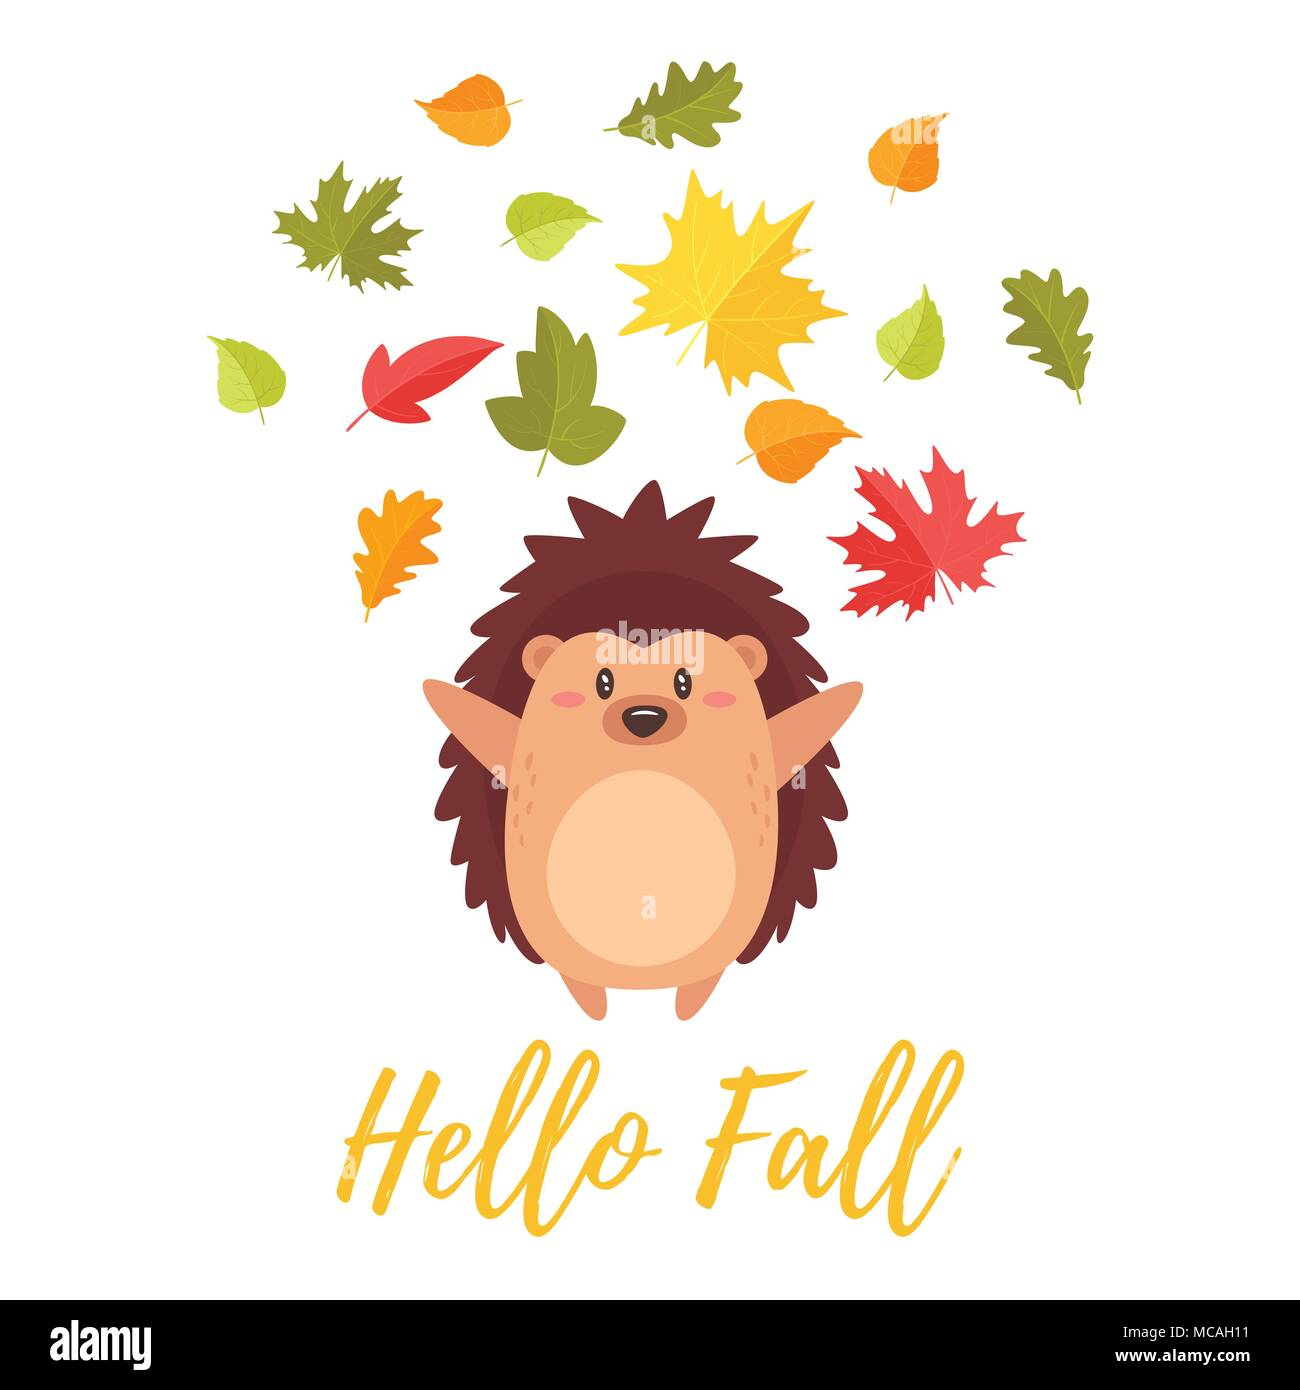 vector cartoon style illustration of cute hedgehog tossing autumn